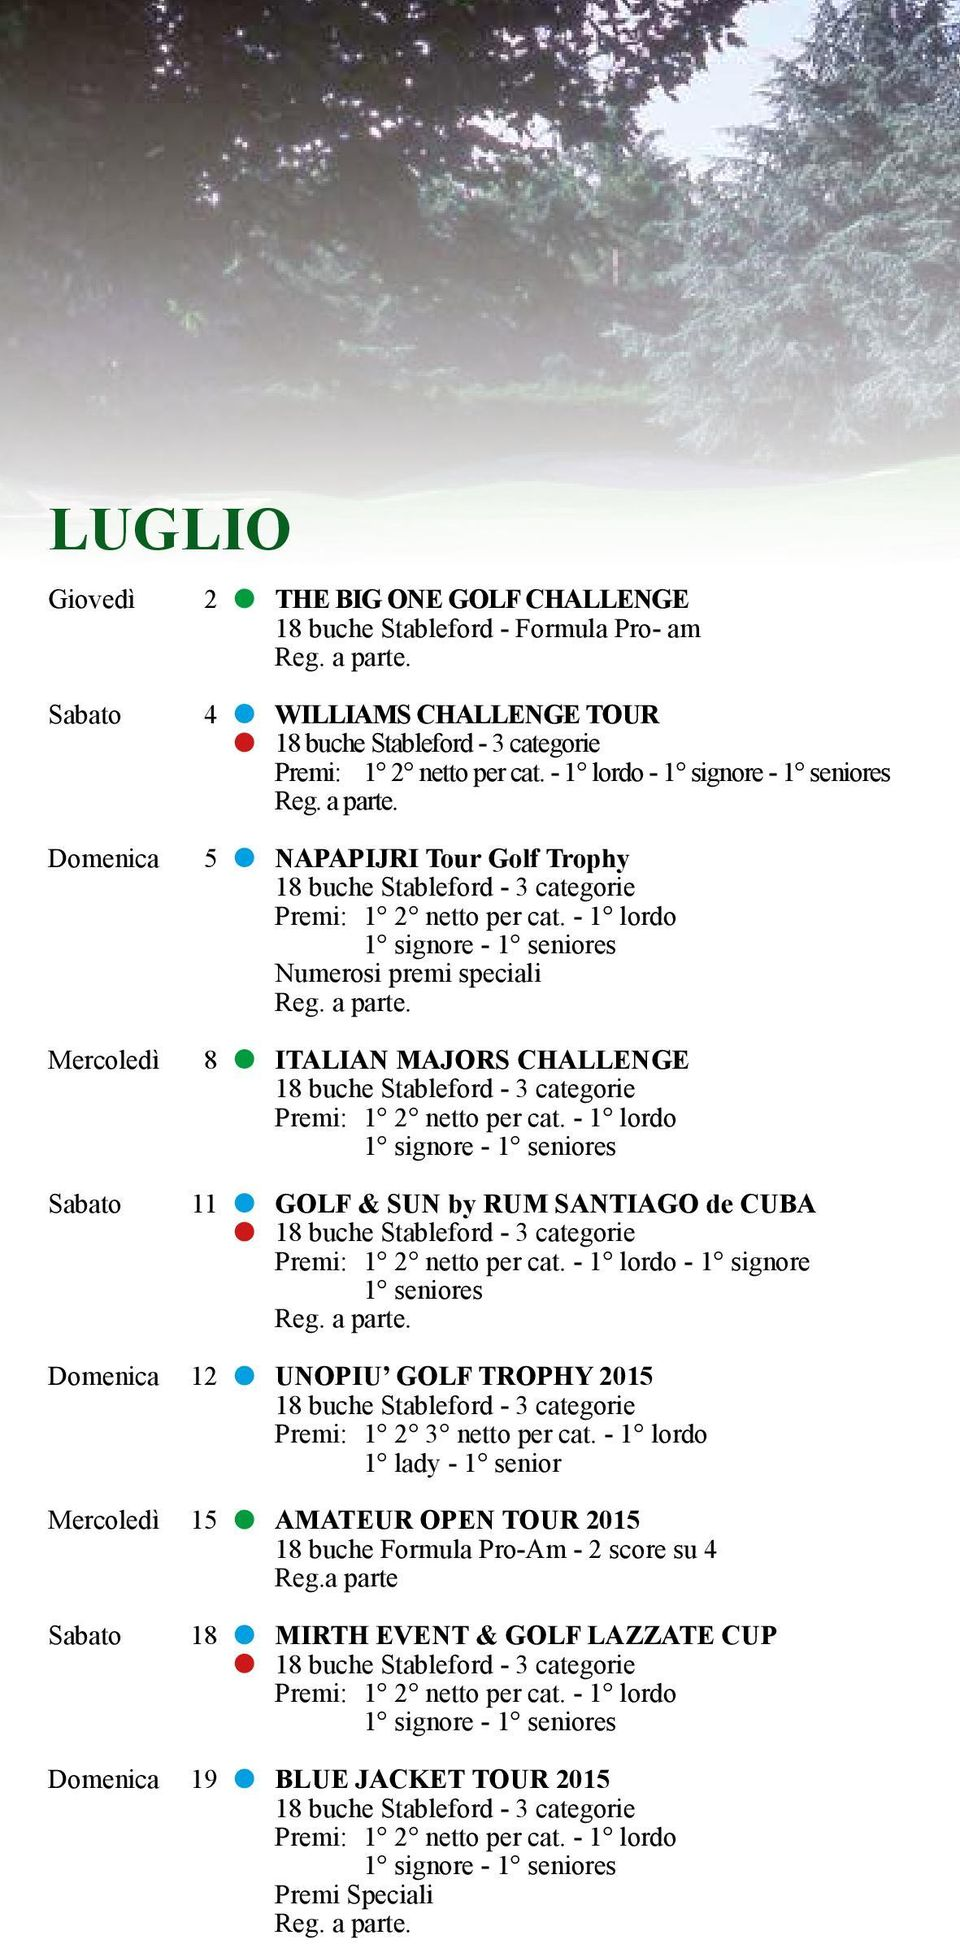 seniores Domenica 12 UNOPIU GOLF TROPHY 2015 Premi: 1 2 3 netto per cat.